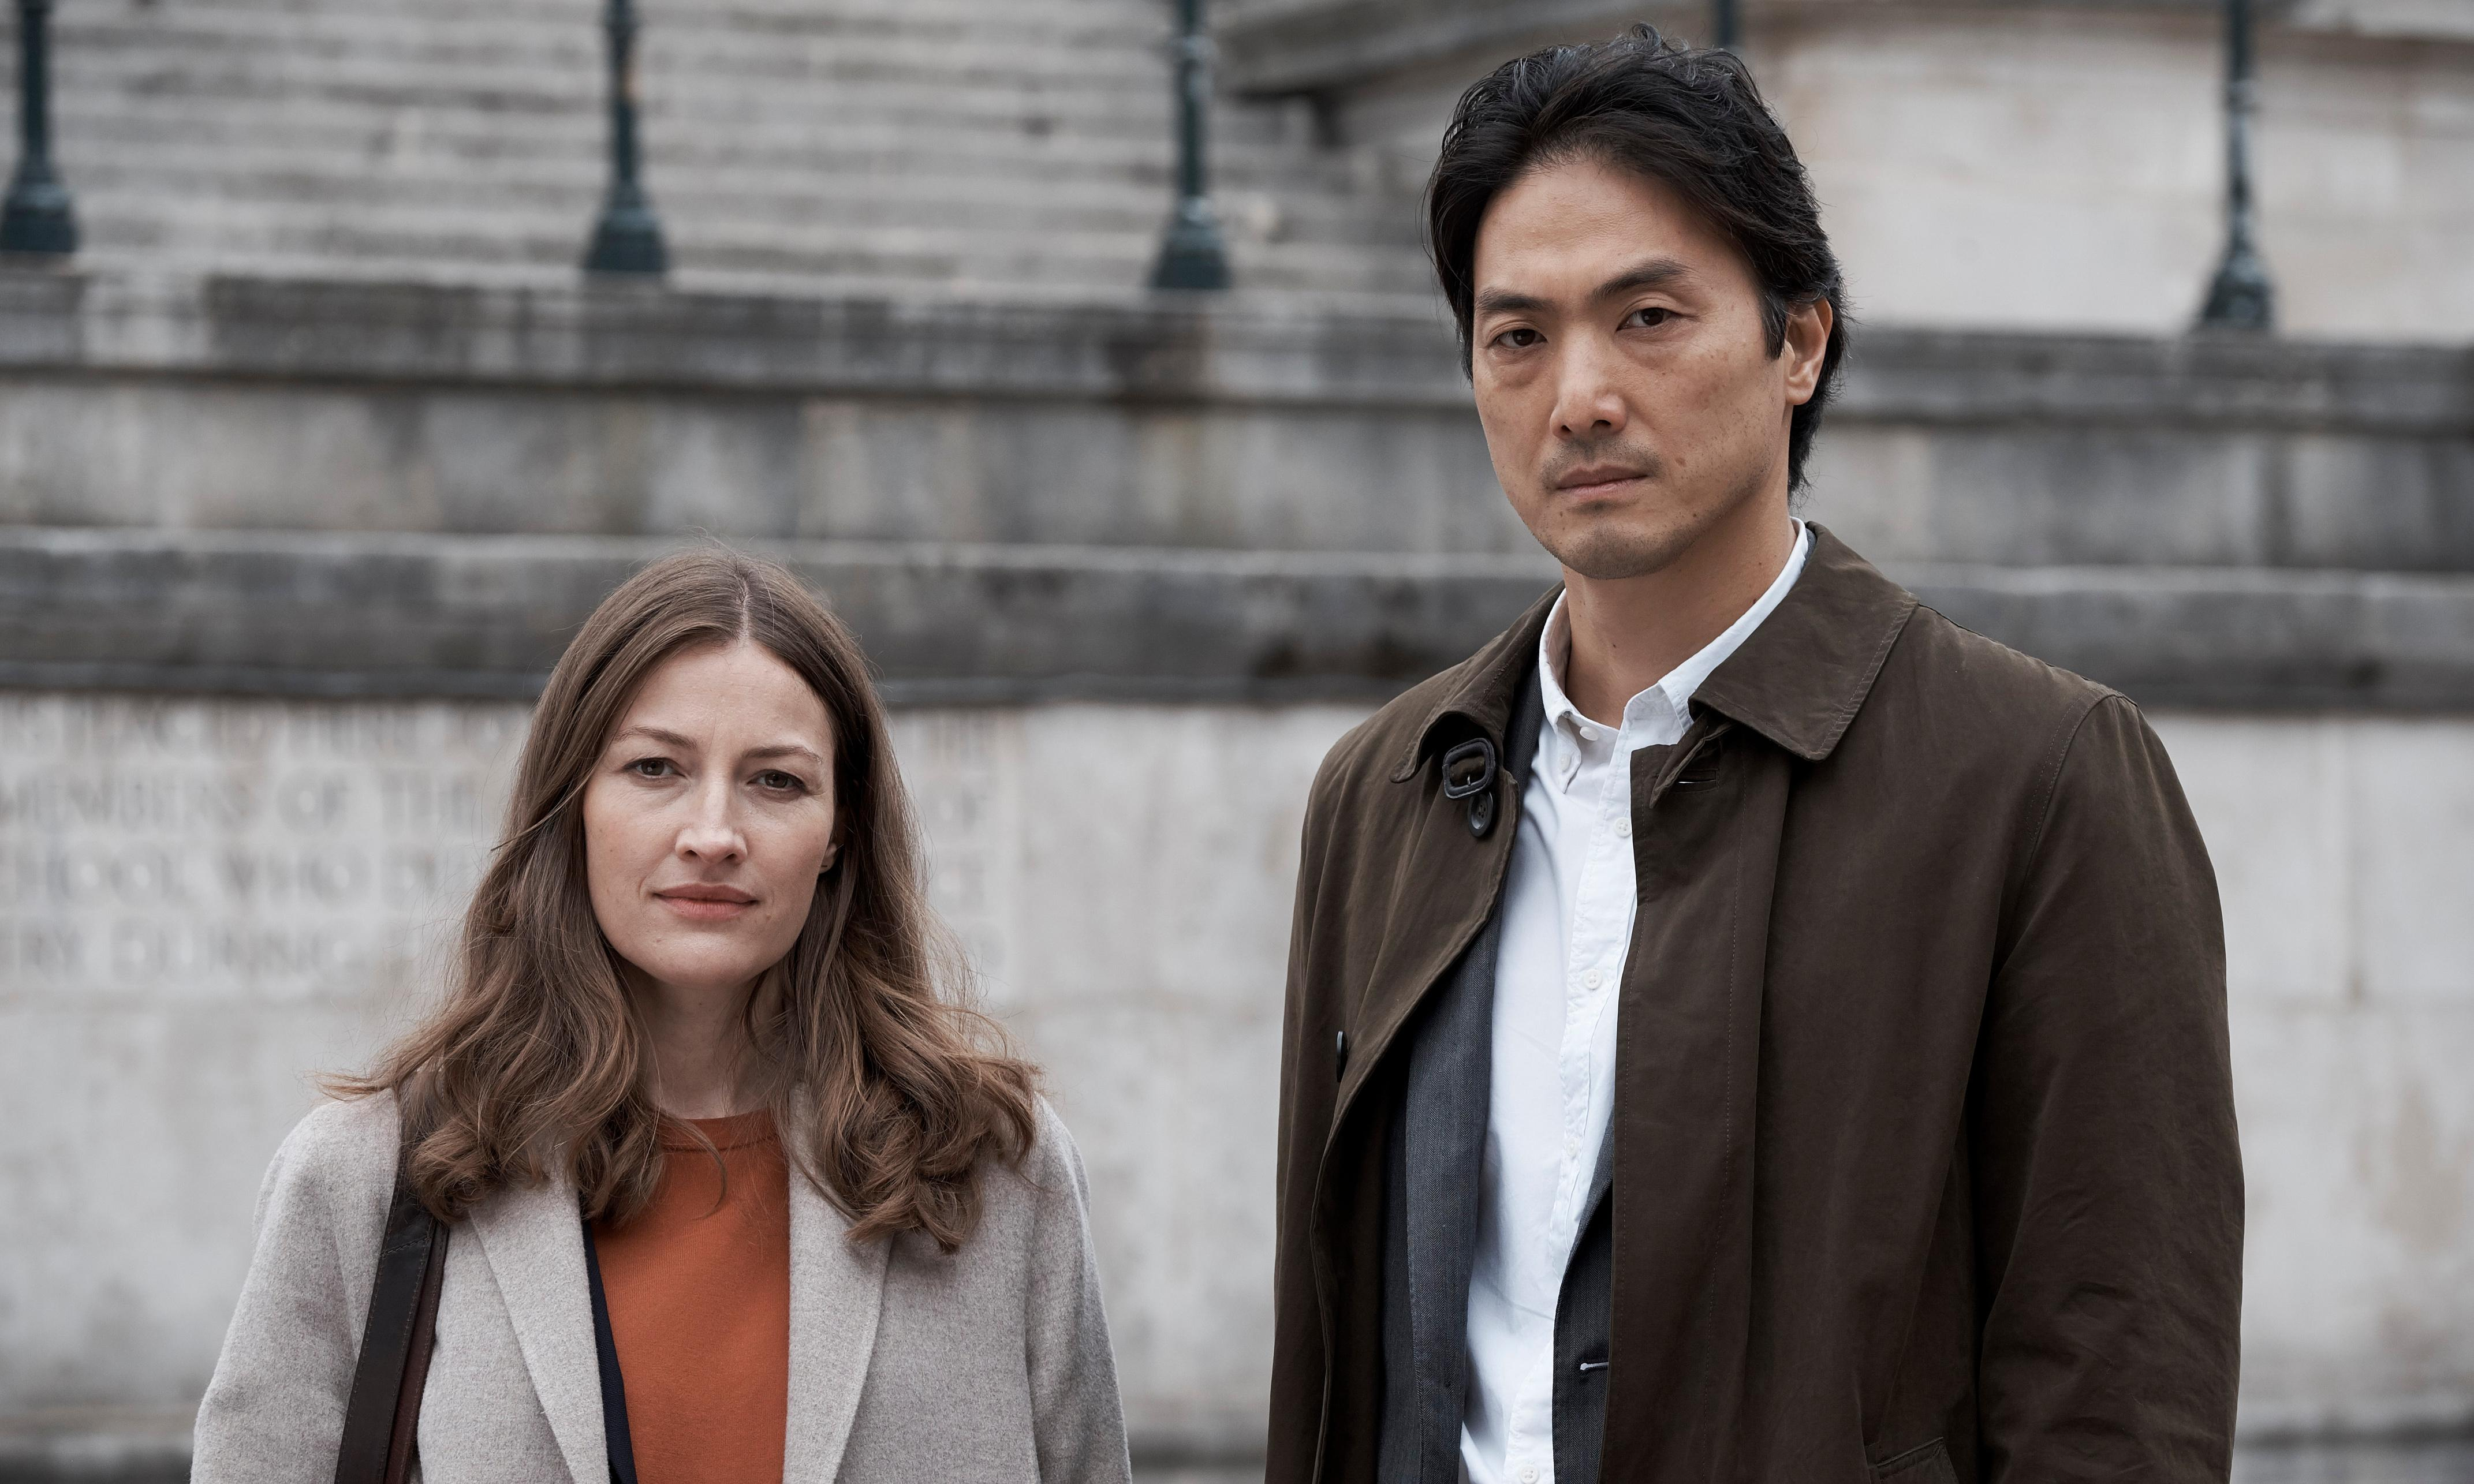 Giri/Haji review – Kelly Macdonald crime show is all killer and no thriller